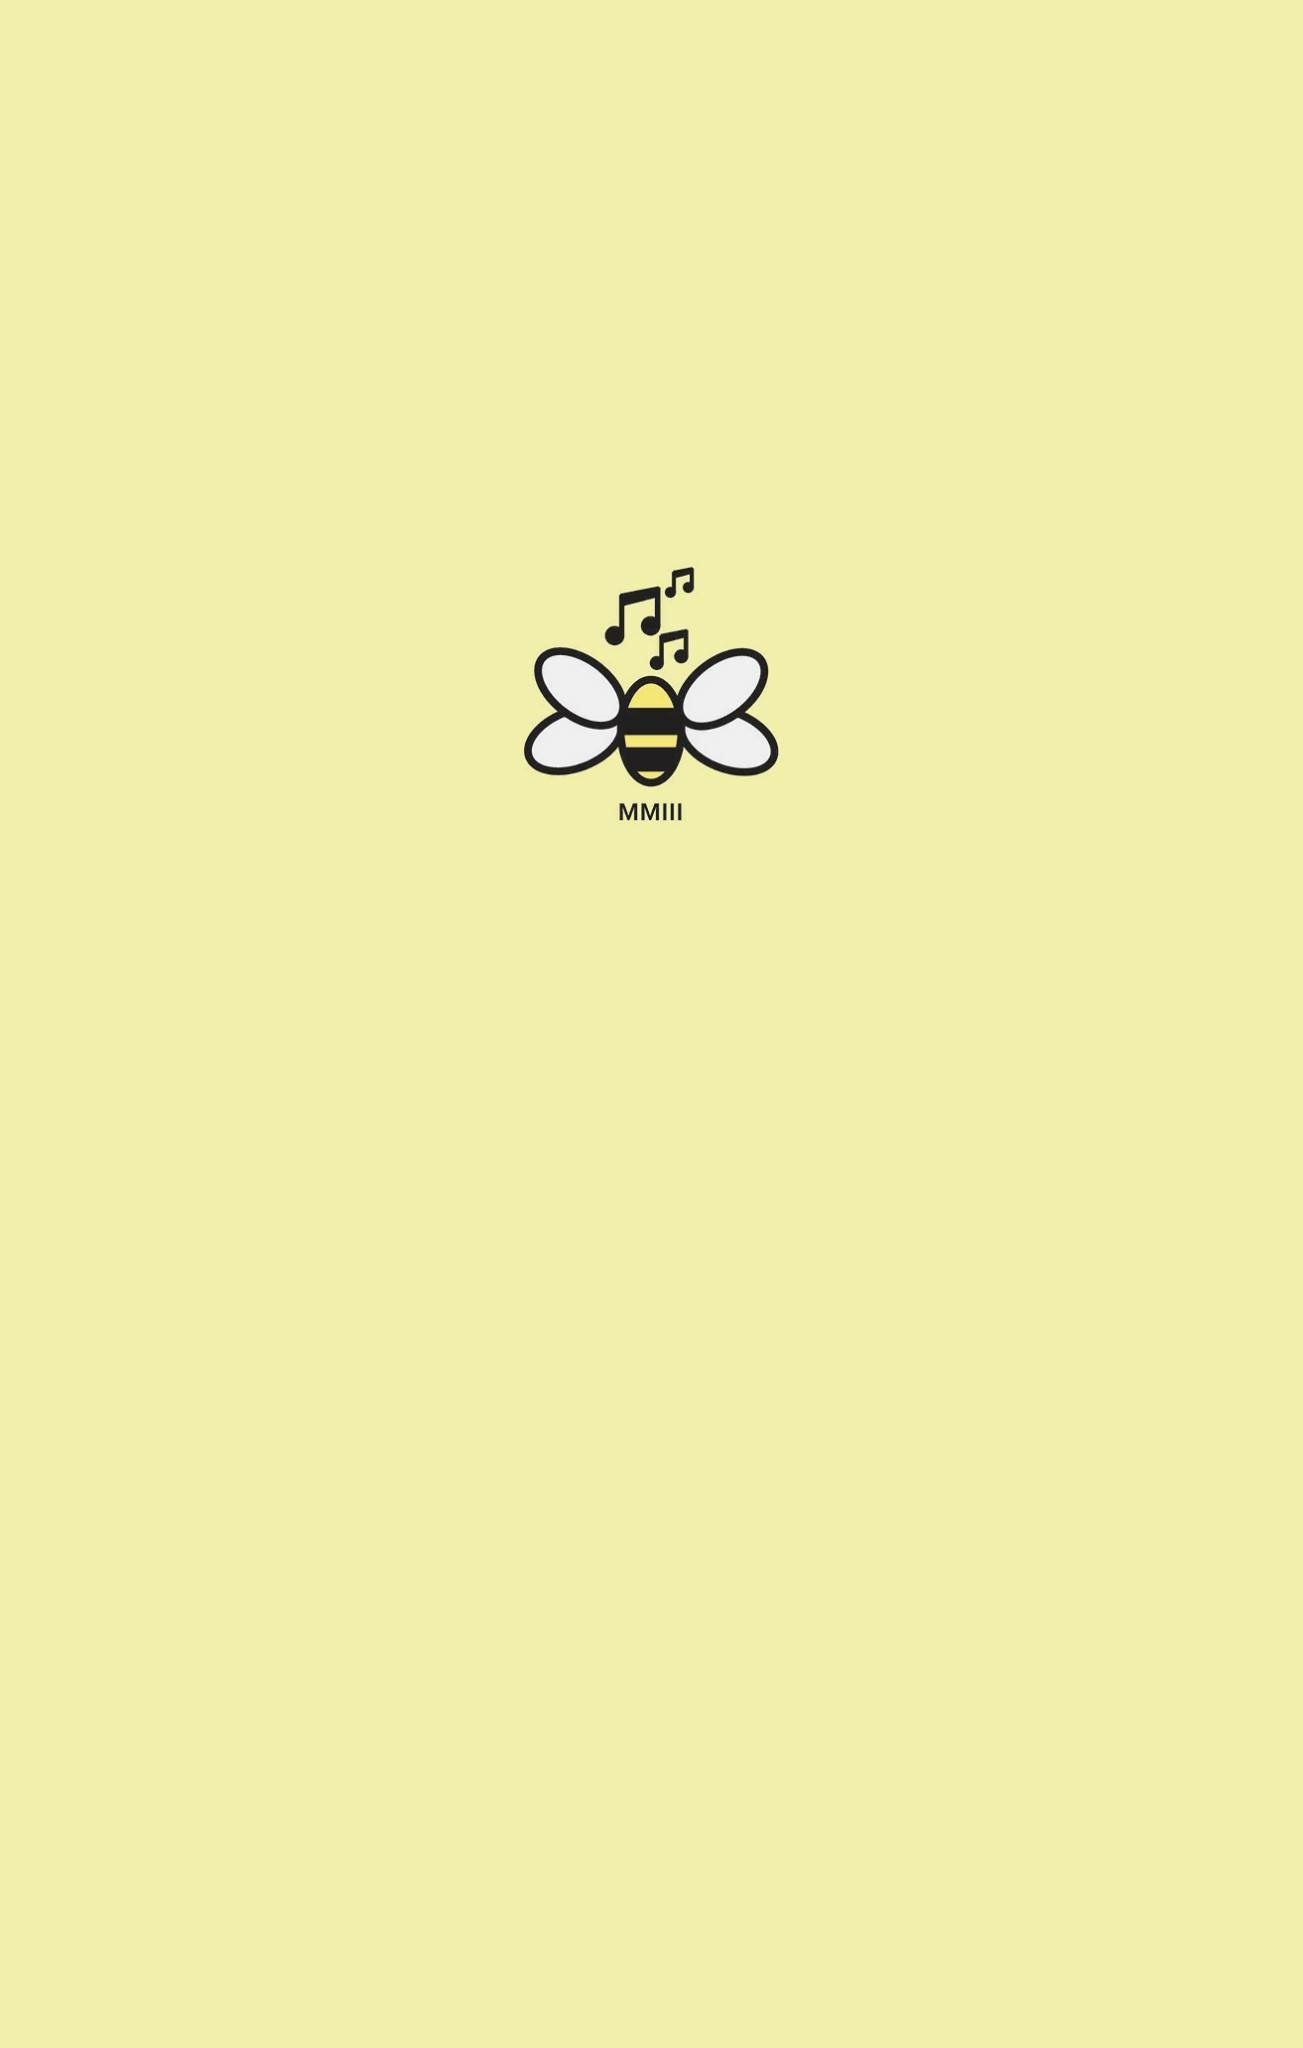 Cute Pastel Yellow Aesthetic Wallpapers - Top Free Cute ...